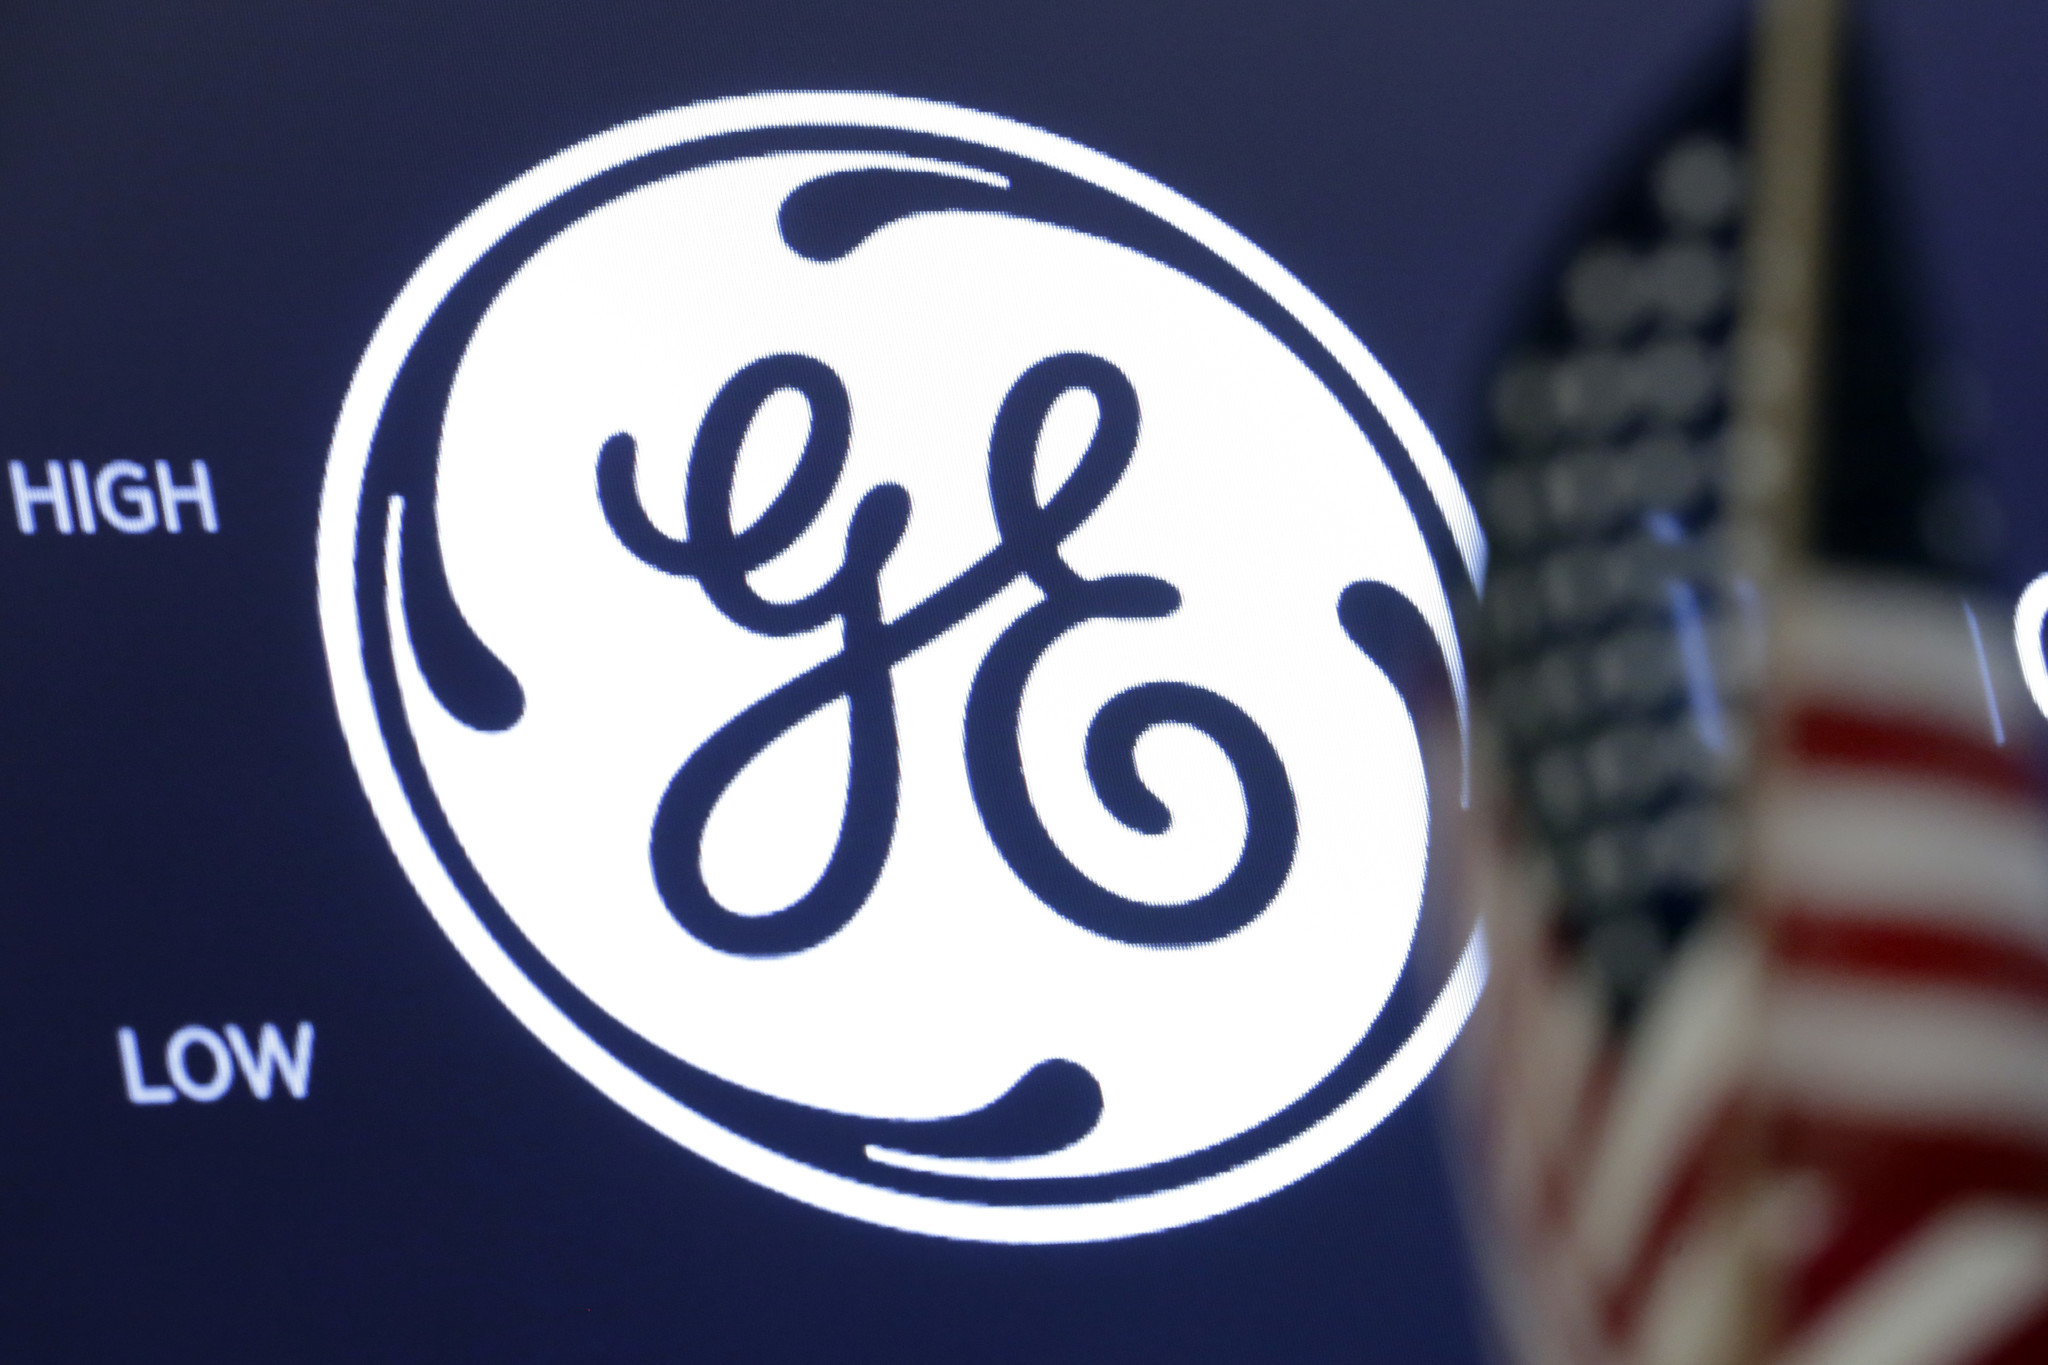 General Electric workers stage walk out, demand company start producing ventilators